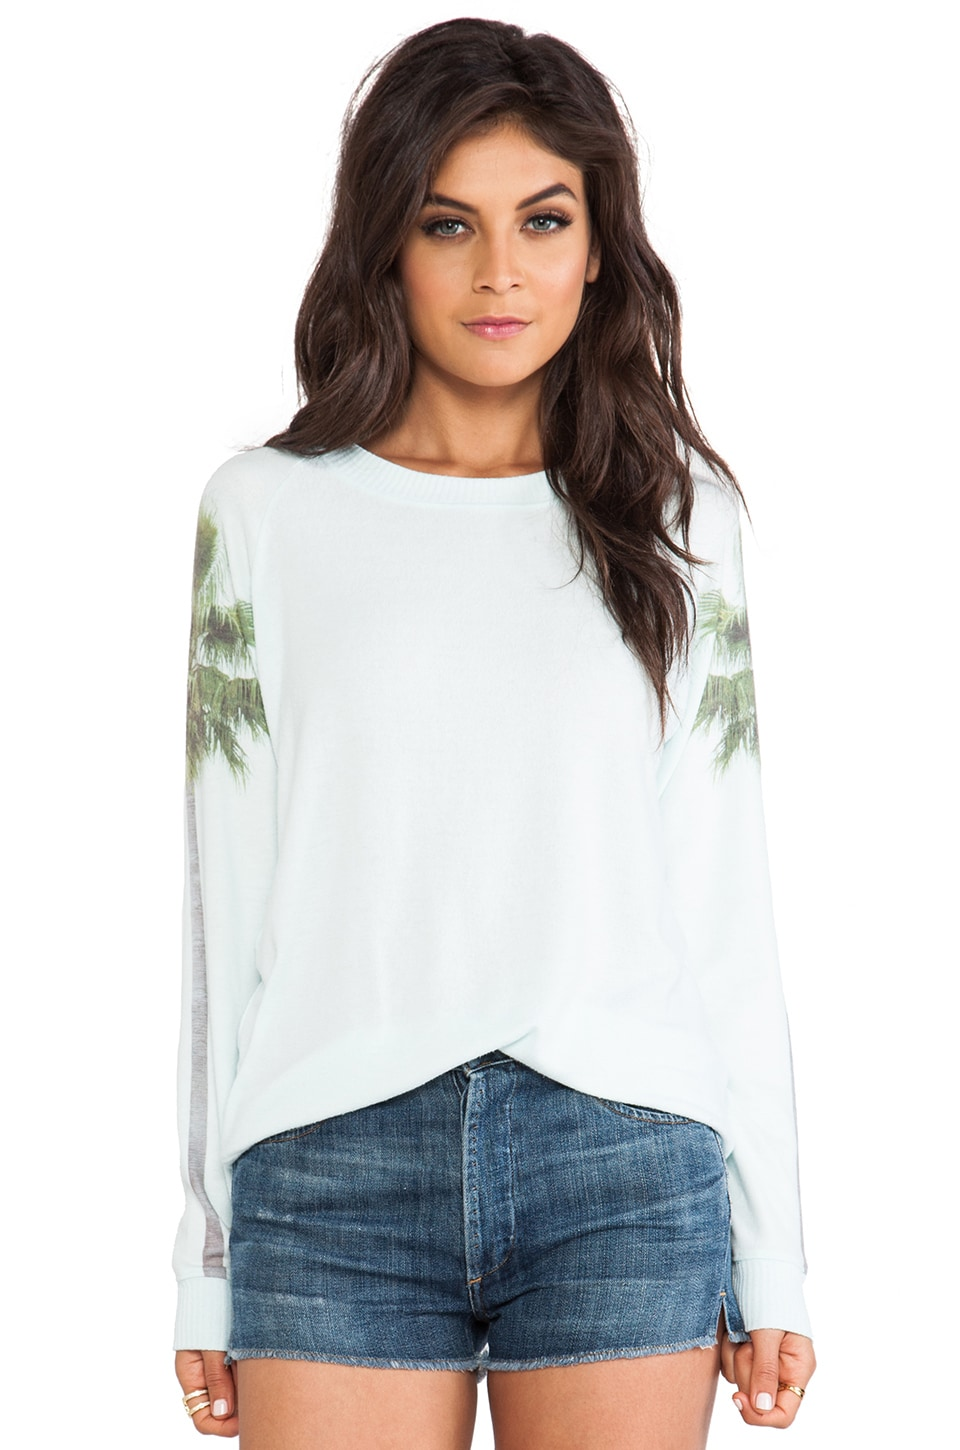 All Things Fabulous Palm Tree Cozy Sweatshirt in Mist